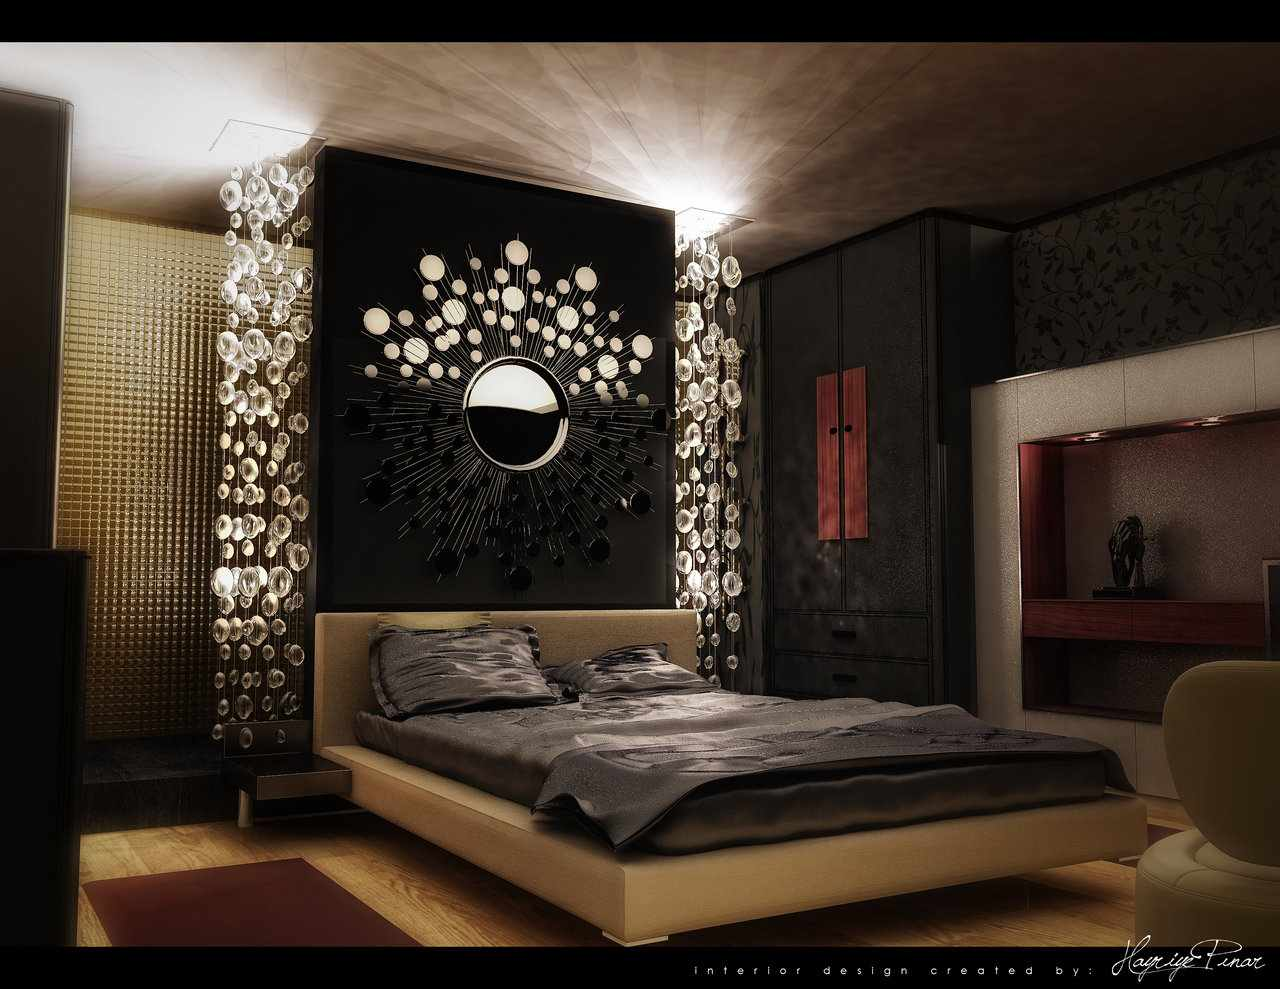 Ikea bedroom ideas ikea bedroom 2014 ideas exotic for Room ideas